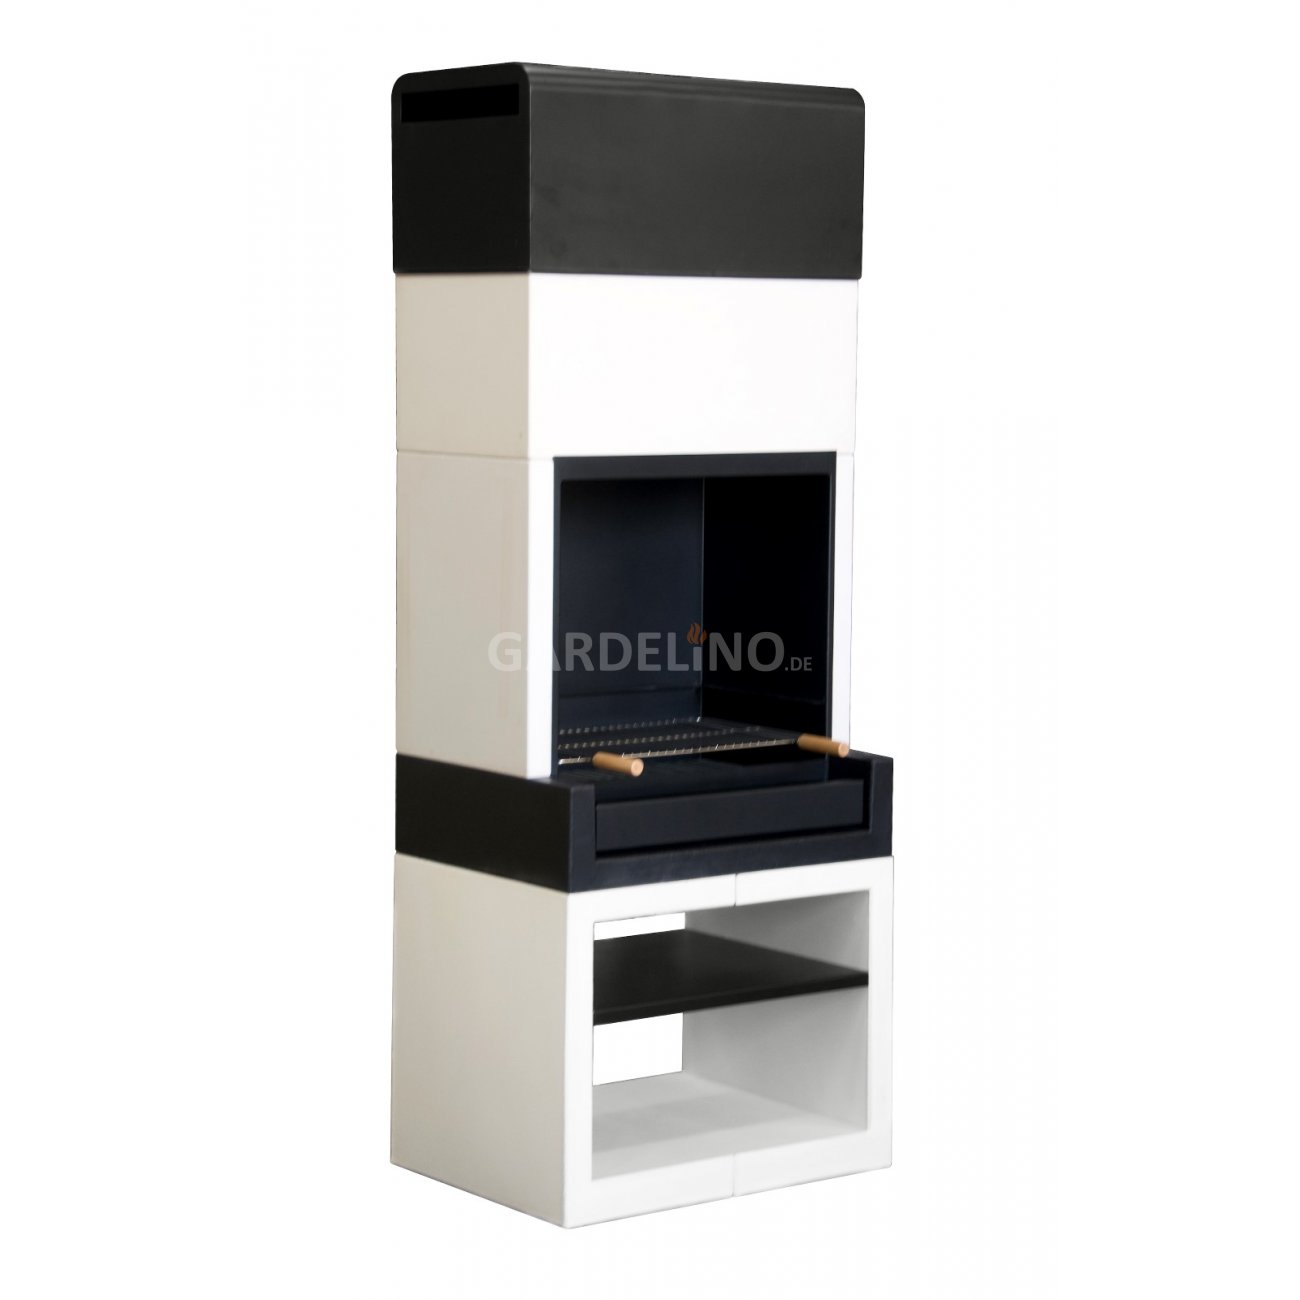 design grillkamin aus der kitaway outdoork chen serie. Black Bedroom Furniture Sets. Home Design Ideas